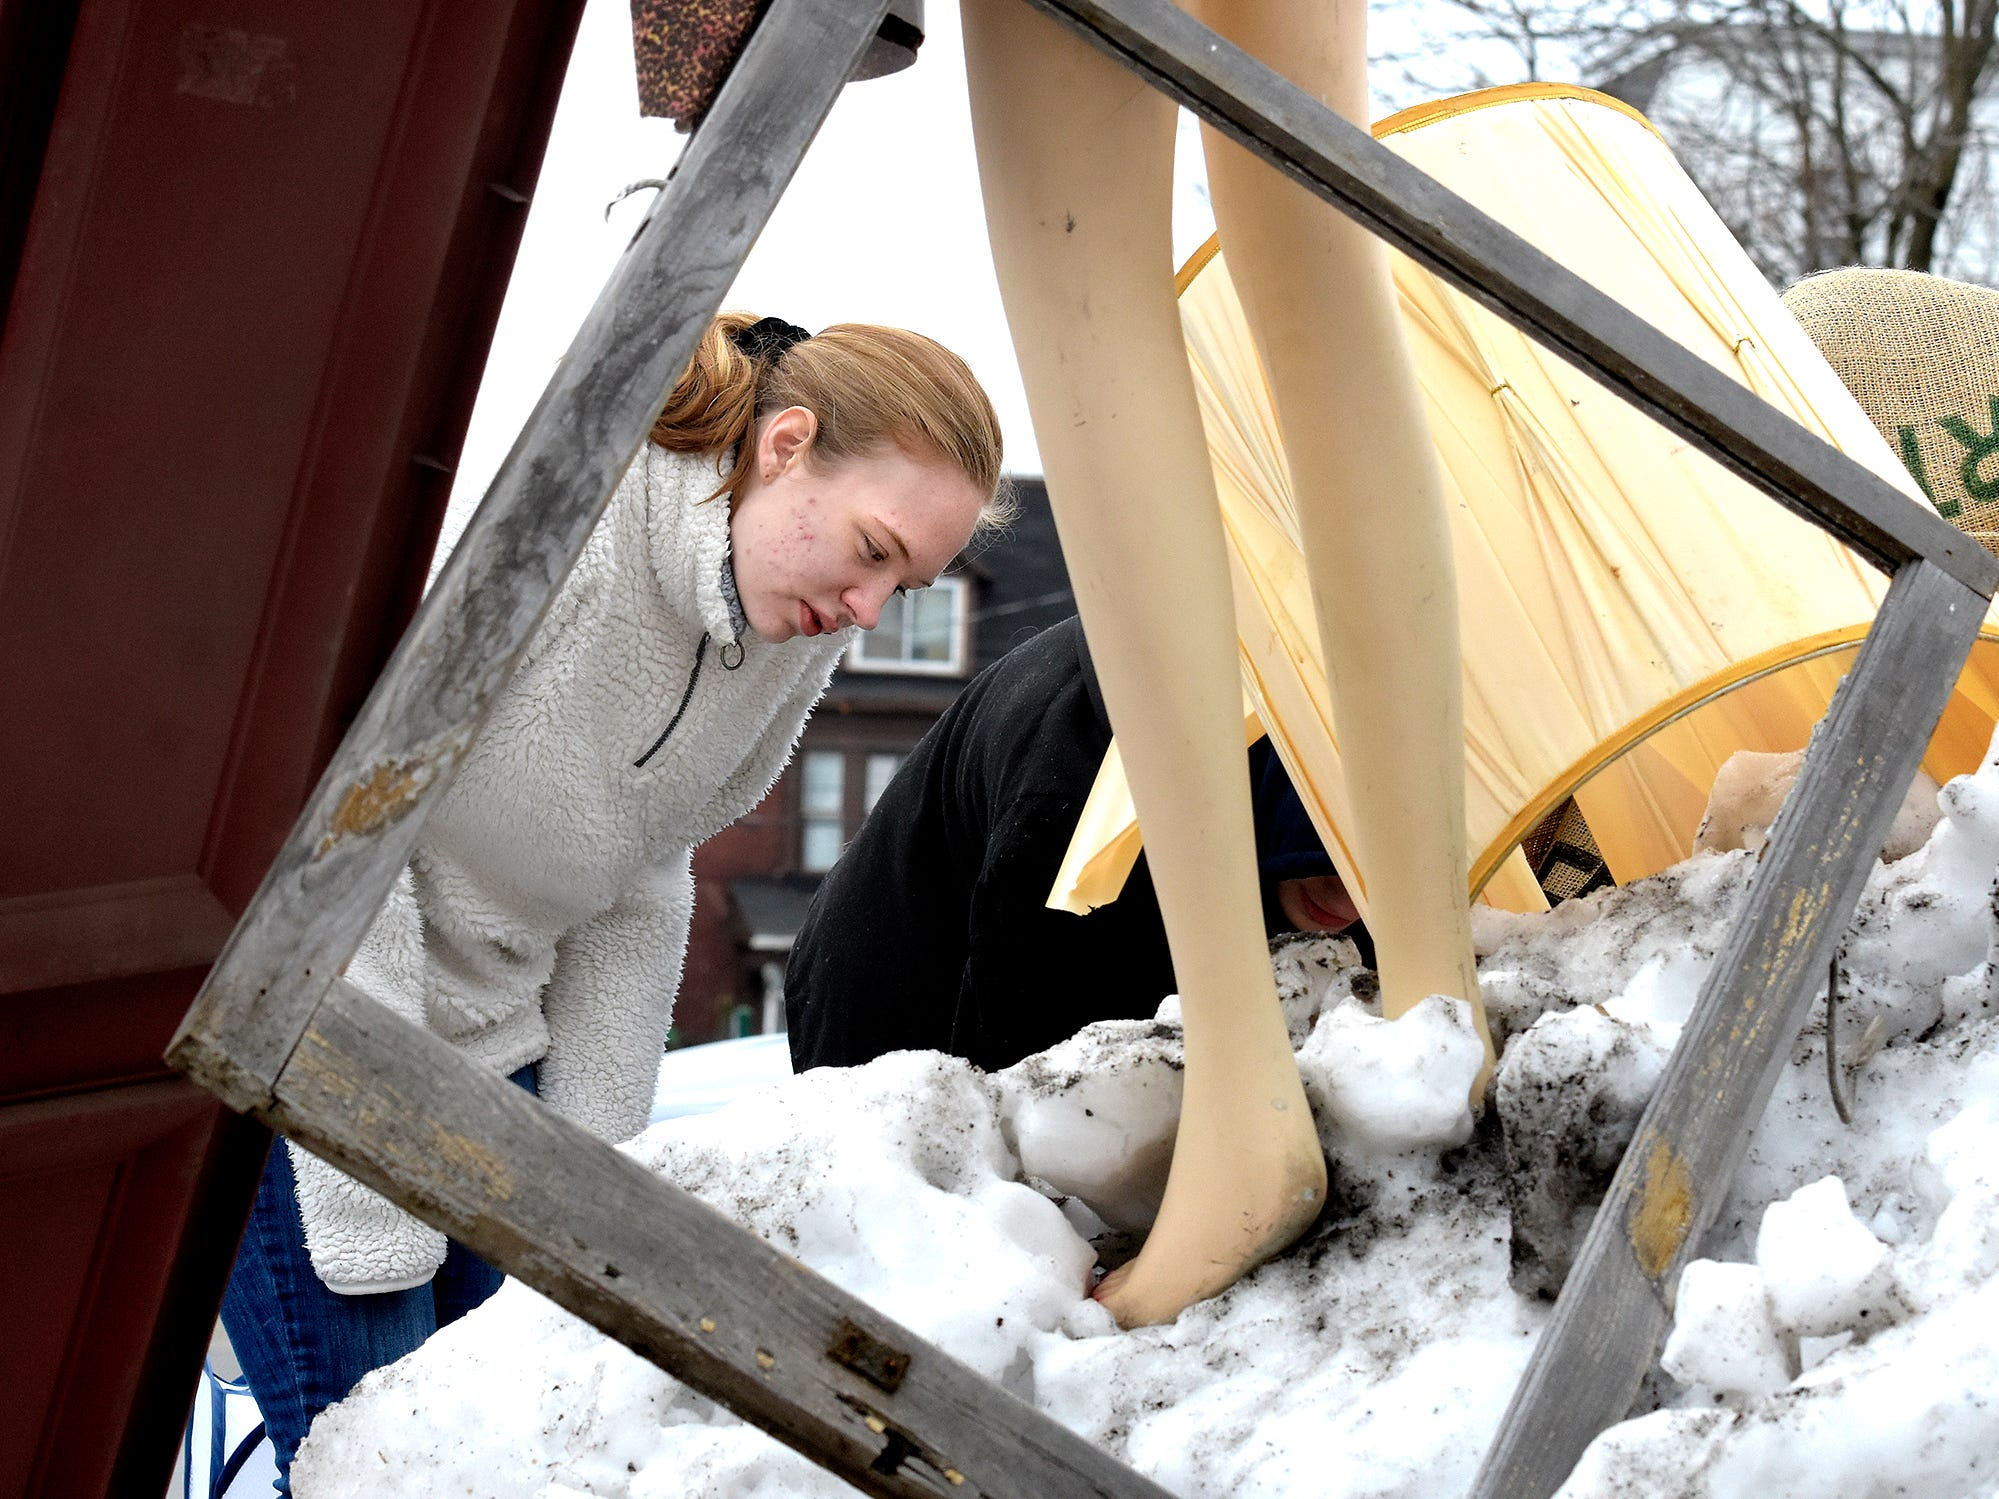 Central High School senior Devon Russell looks for items for her entry in the York County Solid Waste Authority Recycled Art Contest during Picker Day  at the architectural salvage warehouse Refindings in York City Saturday, Feb. 23, 2019. The waste authority is sponsoring the fifth annual contest for York County high school students to promote recycling and celebrate Earth Day. Students create sculptures by mid-April from the materials donated by Refindings and the contest exhibit will be on display in the Marketview Arts Gallery, 37 W. Philadelphia St., beginning Sunday, April 14. Contest winners will be announced there during an awards event April 18. Bill Kalina photo